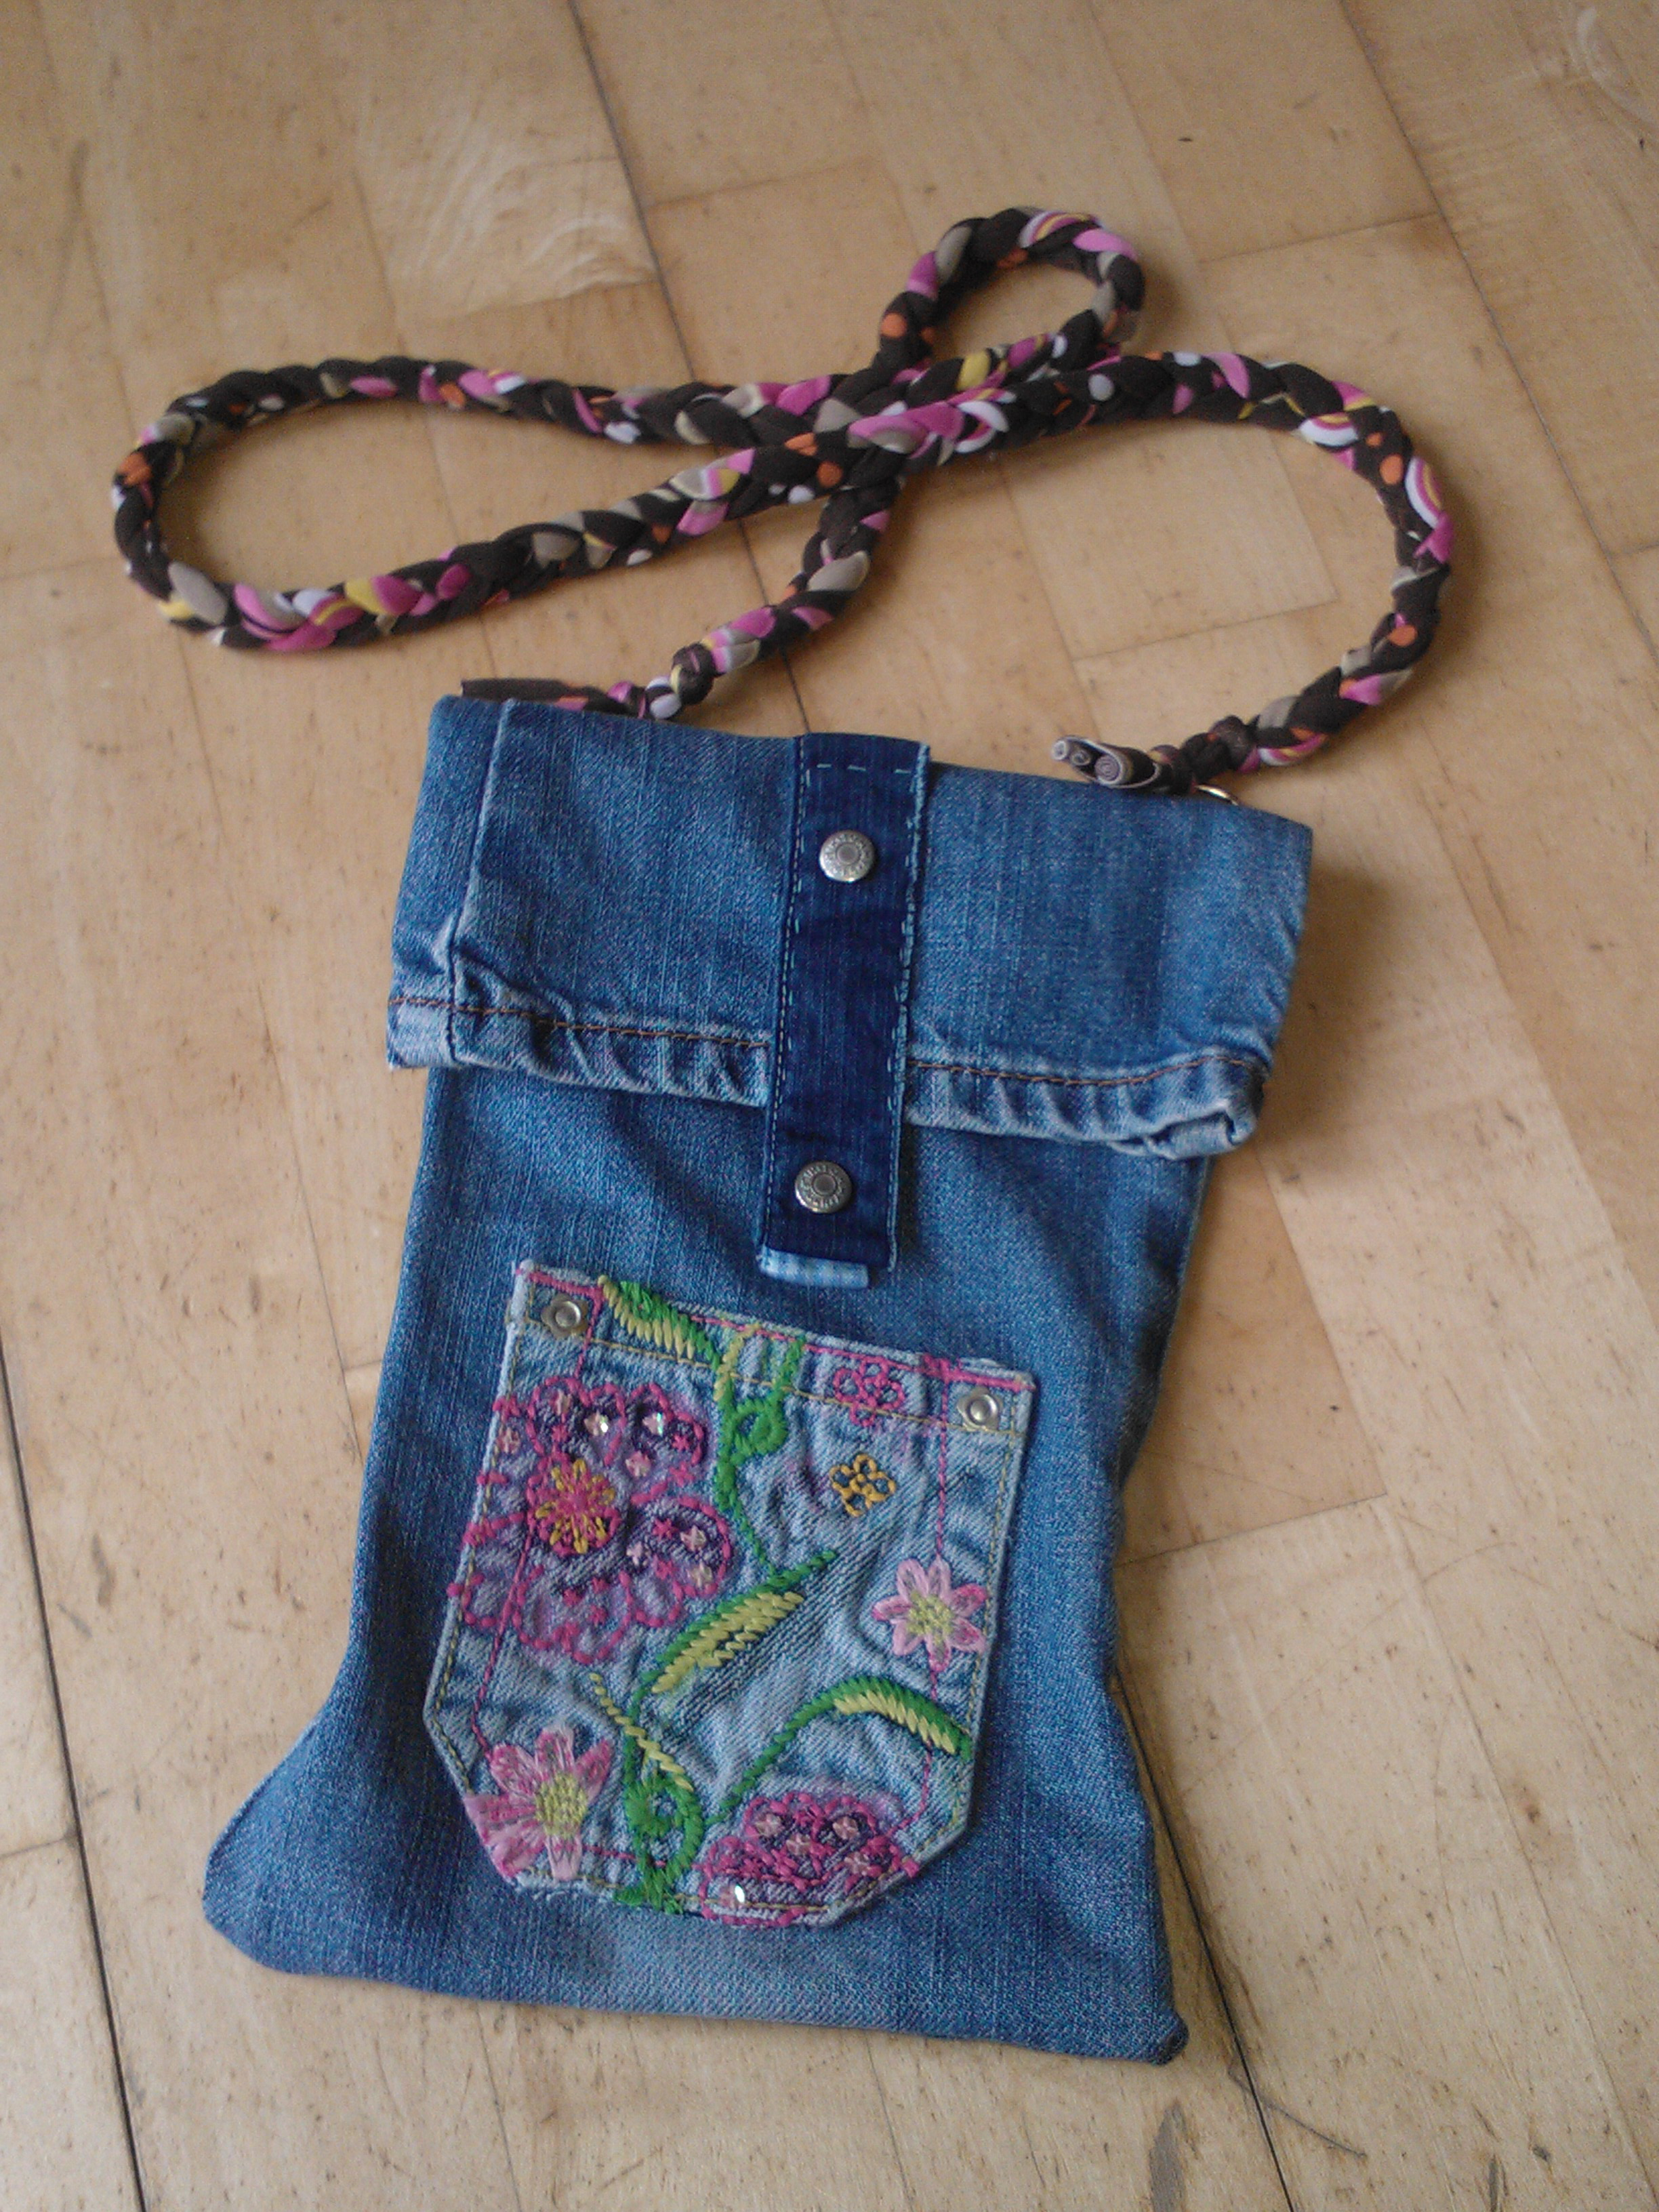 301 moved permanently for Jeans upcycling ideas